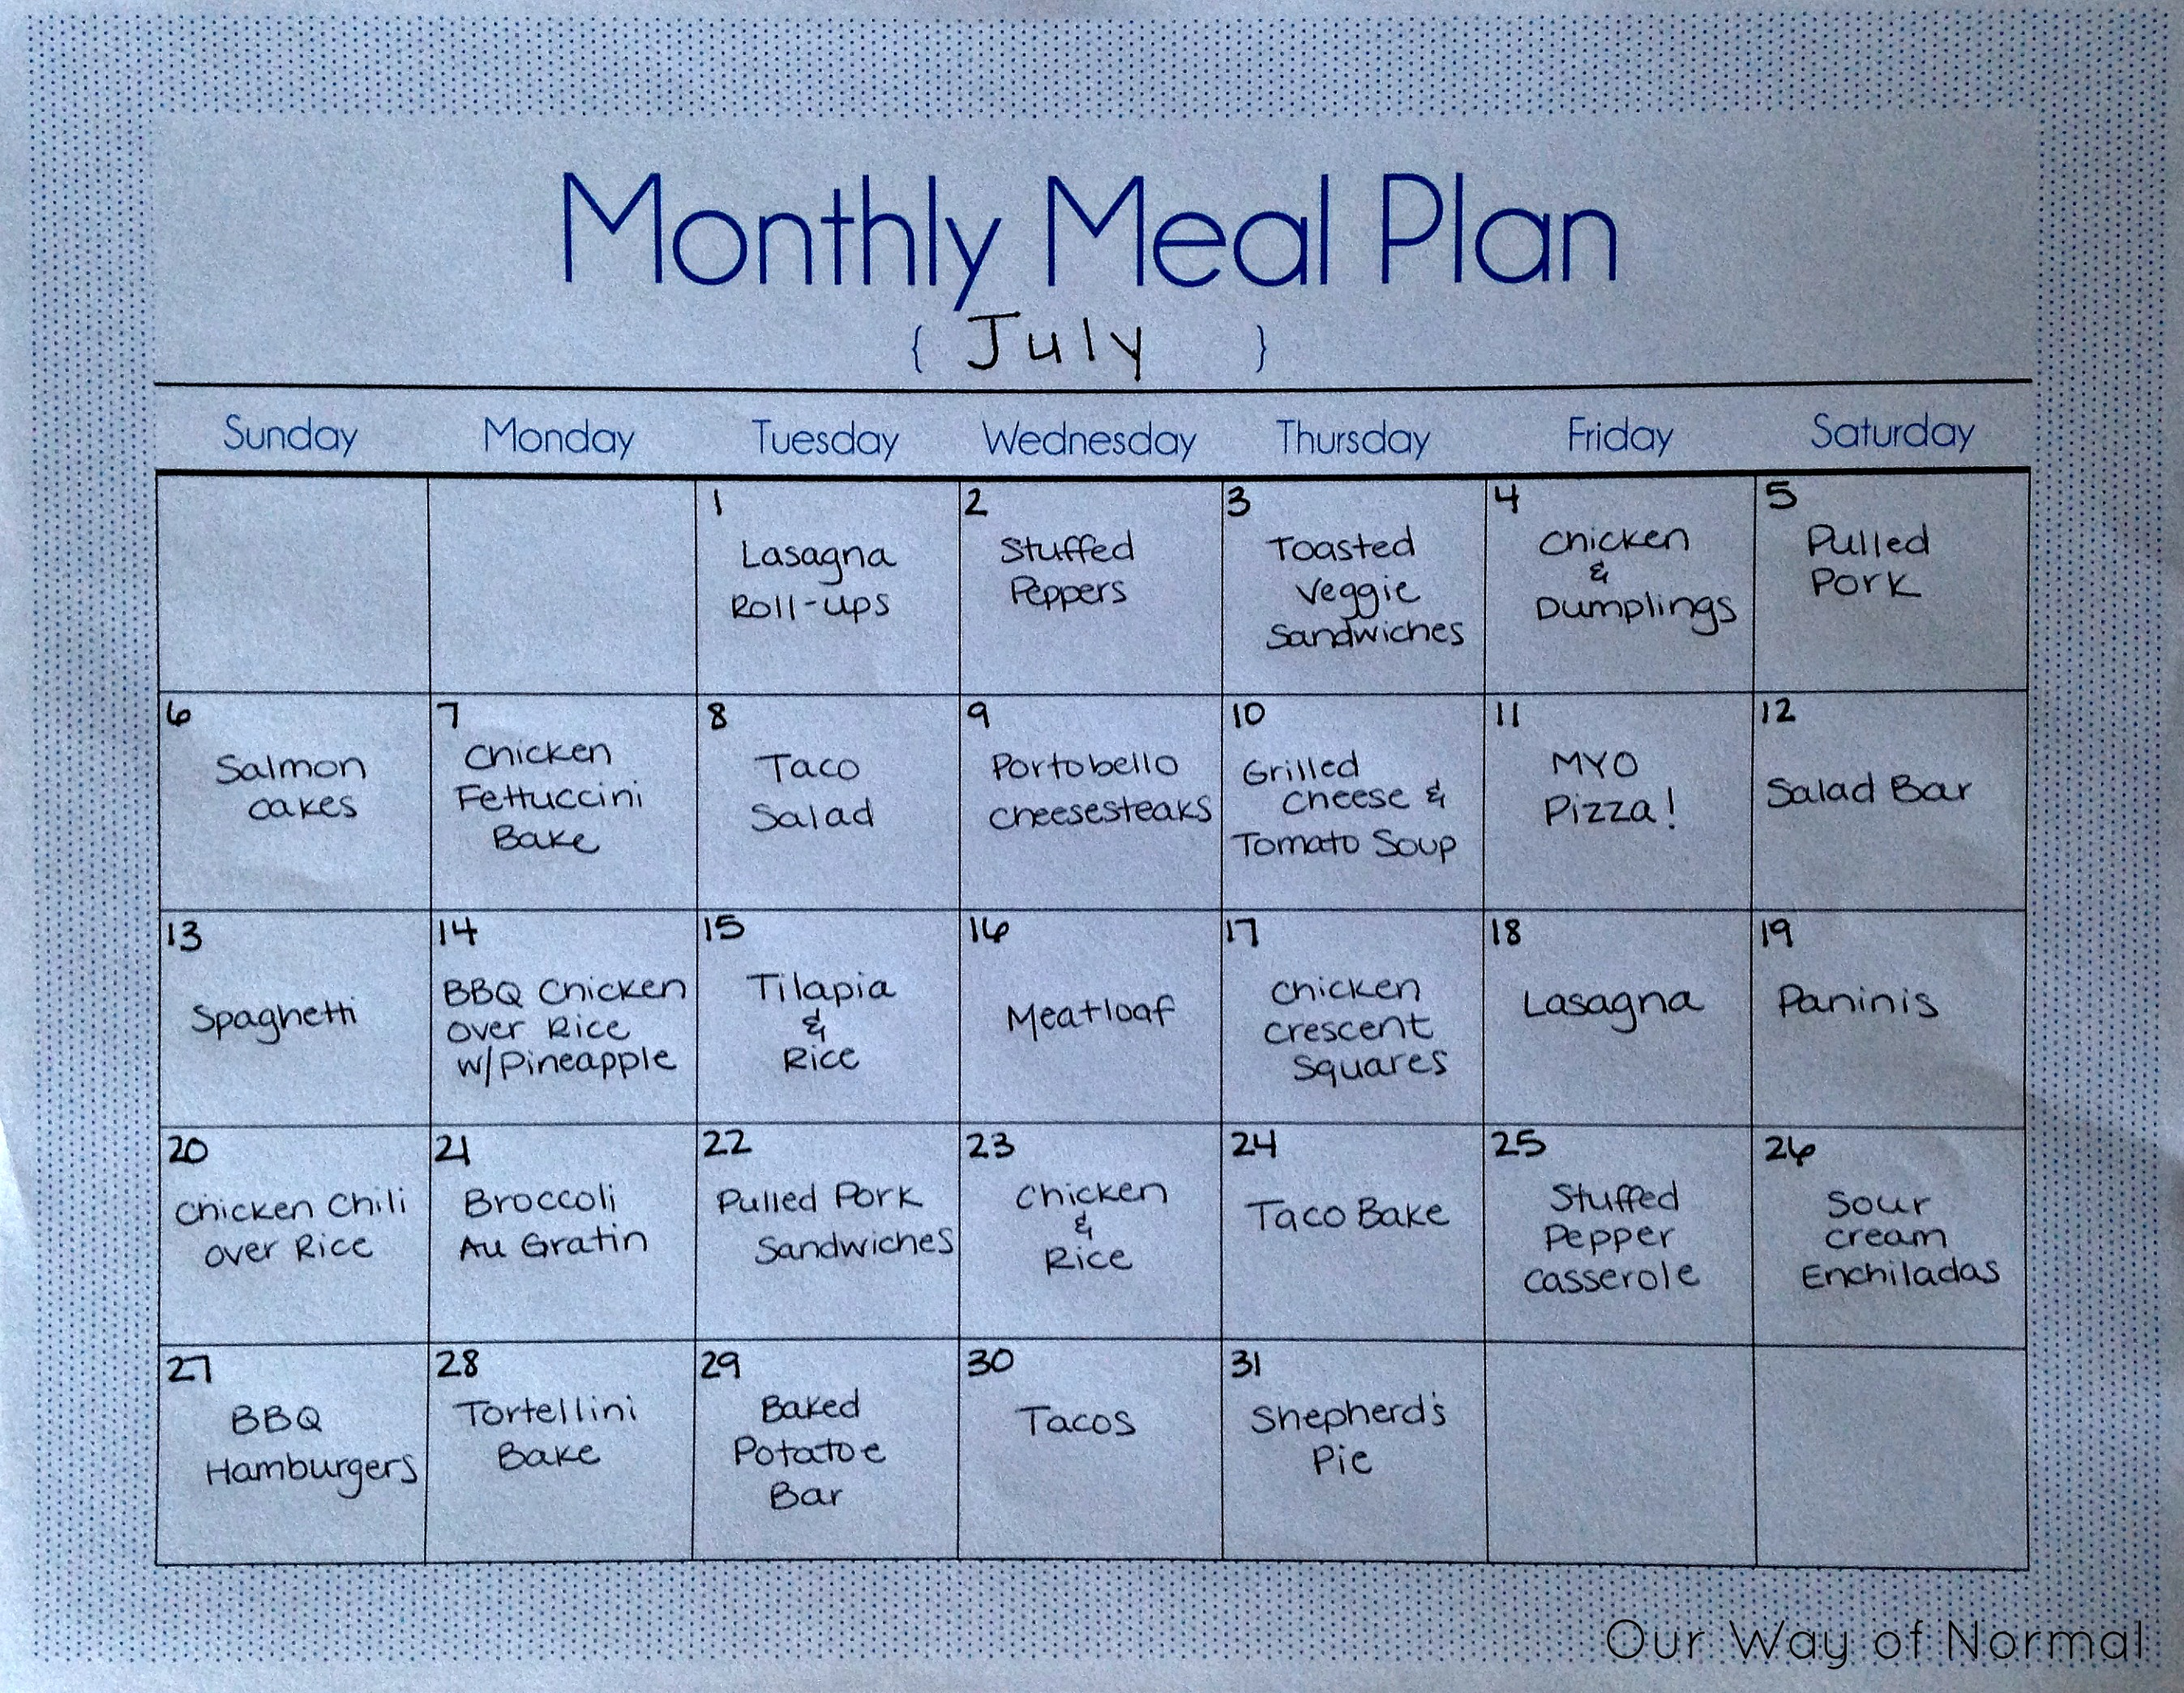 Monthly Meal Plan | Our Way of Normal